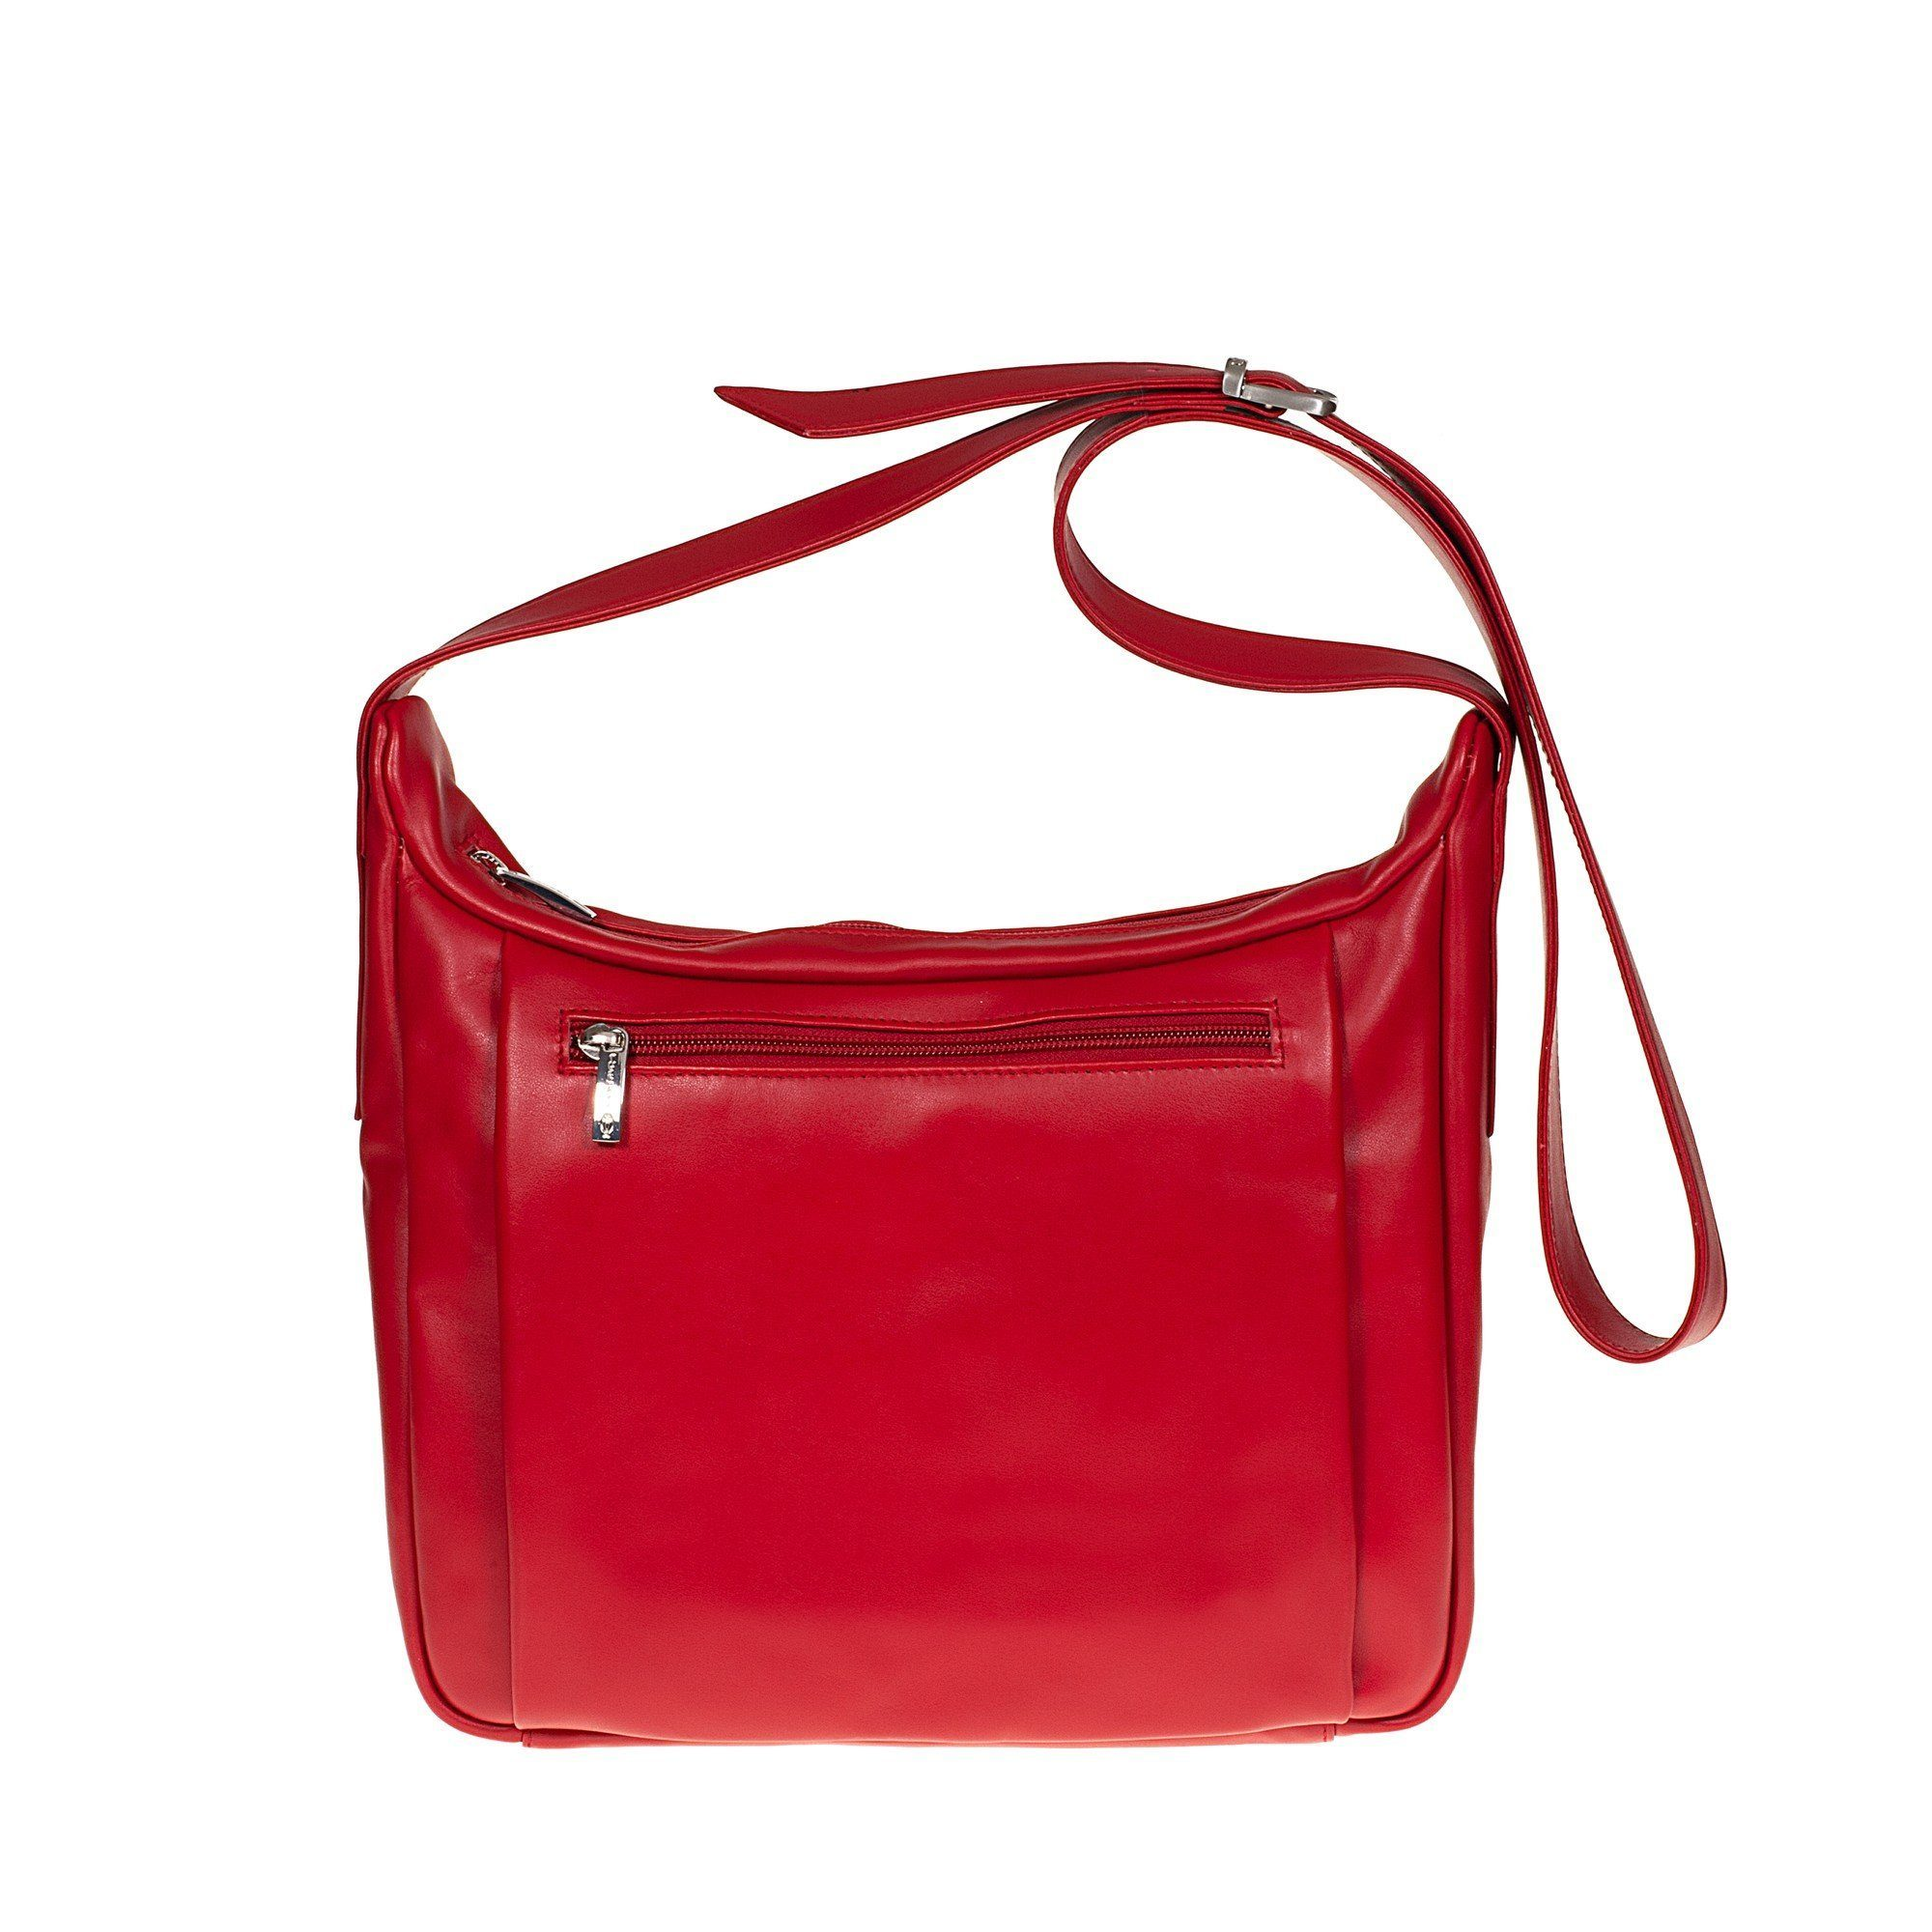 Tuscans 'Celsa' Women's Leather Shoulder Bag Ladies Shoulder Bag Tuscans Red